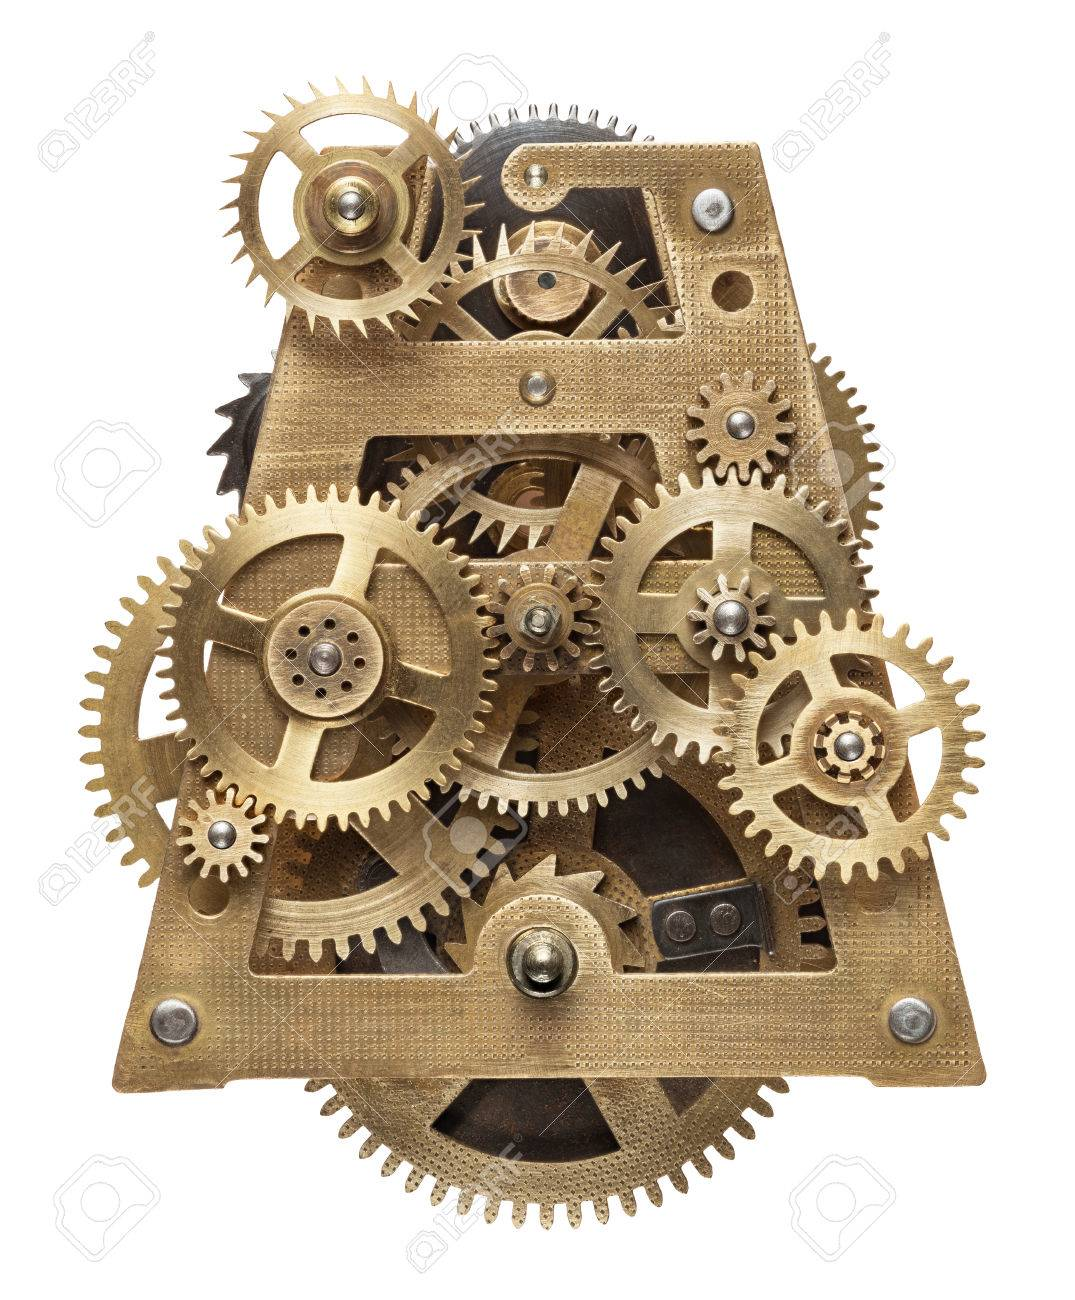 609ecbc1eeb Metal collage of clockwork gears isolated on white background Stock Photo -  48054328